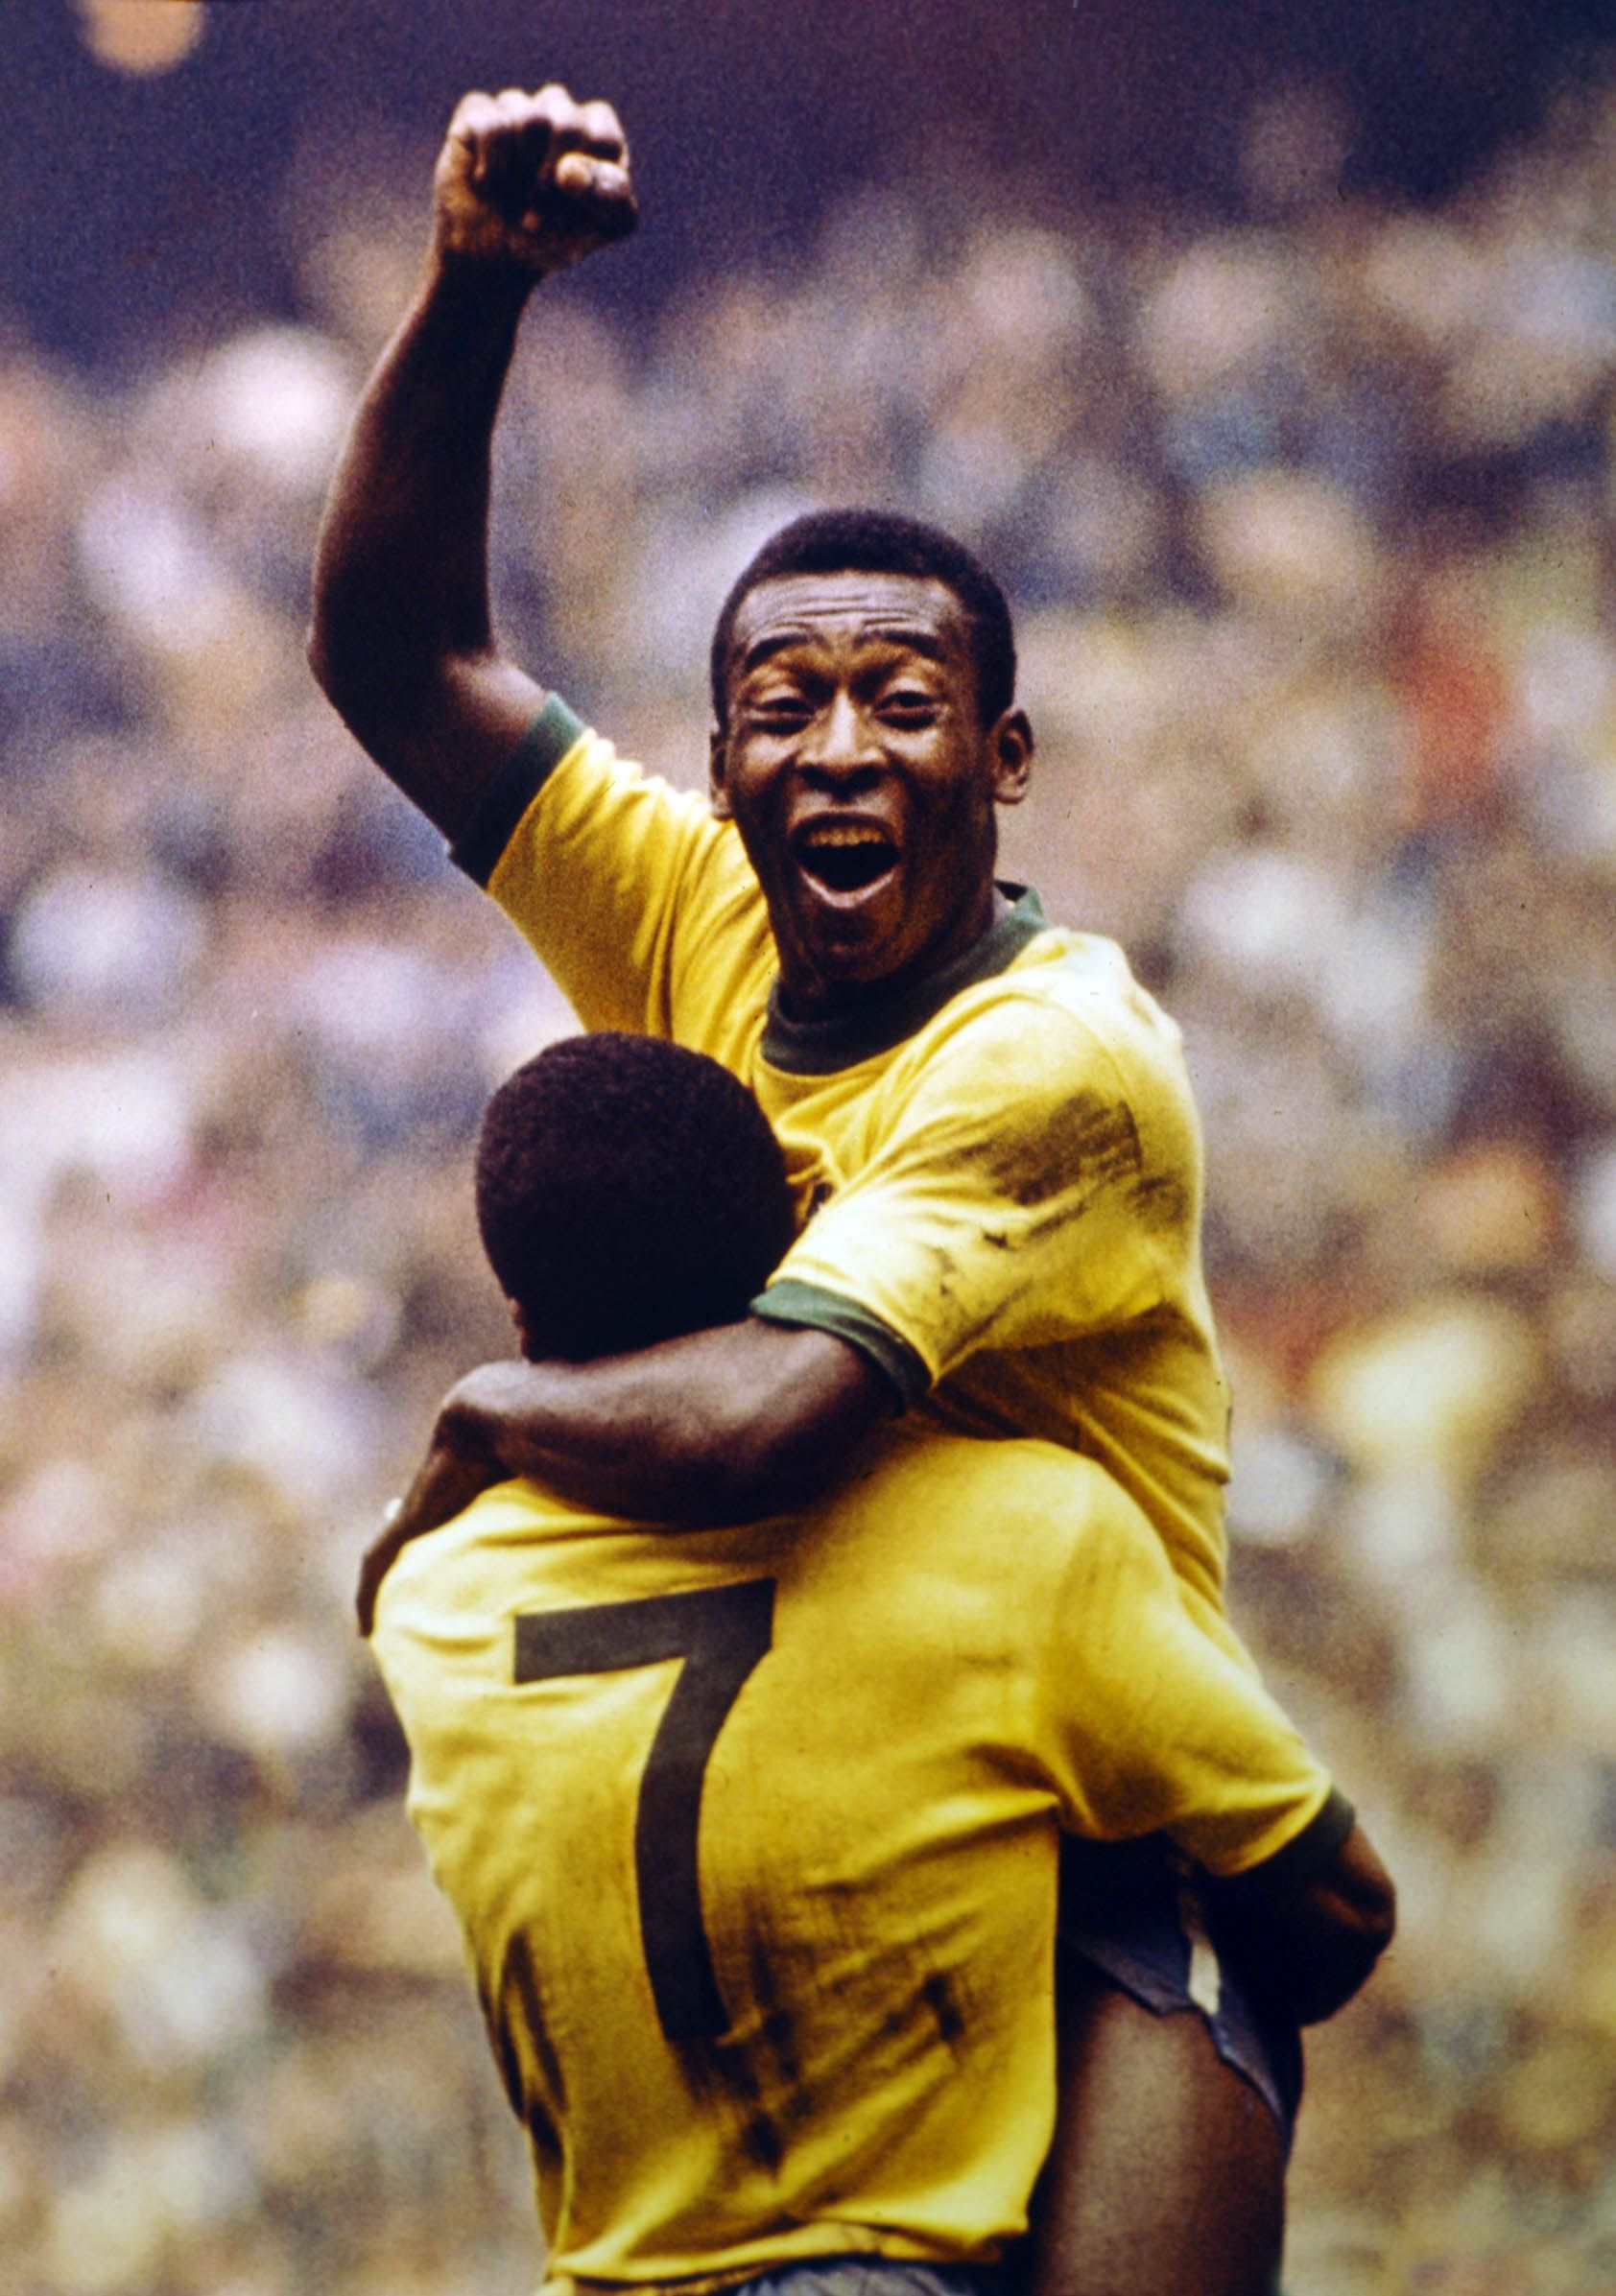 Pin By Guilherme Rodrigues On Football Best Football Players Good Soccer Players Pele